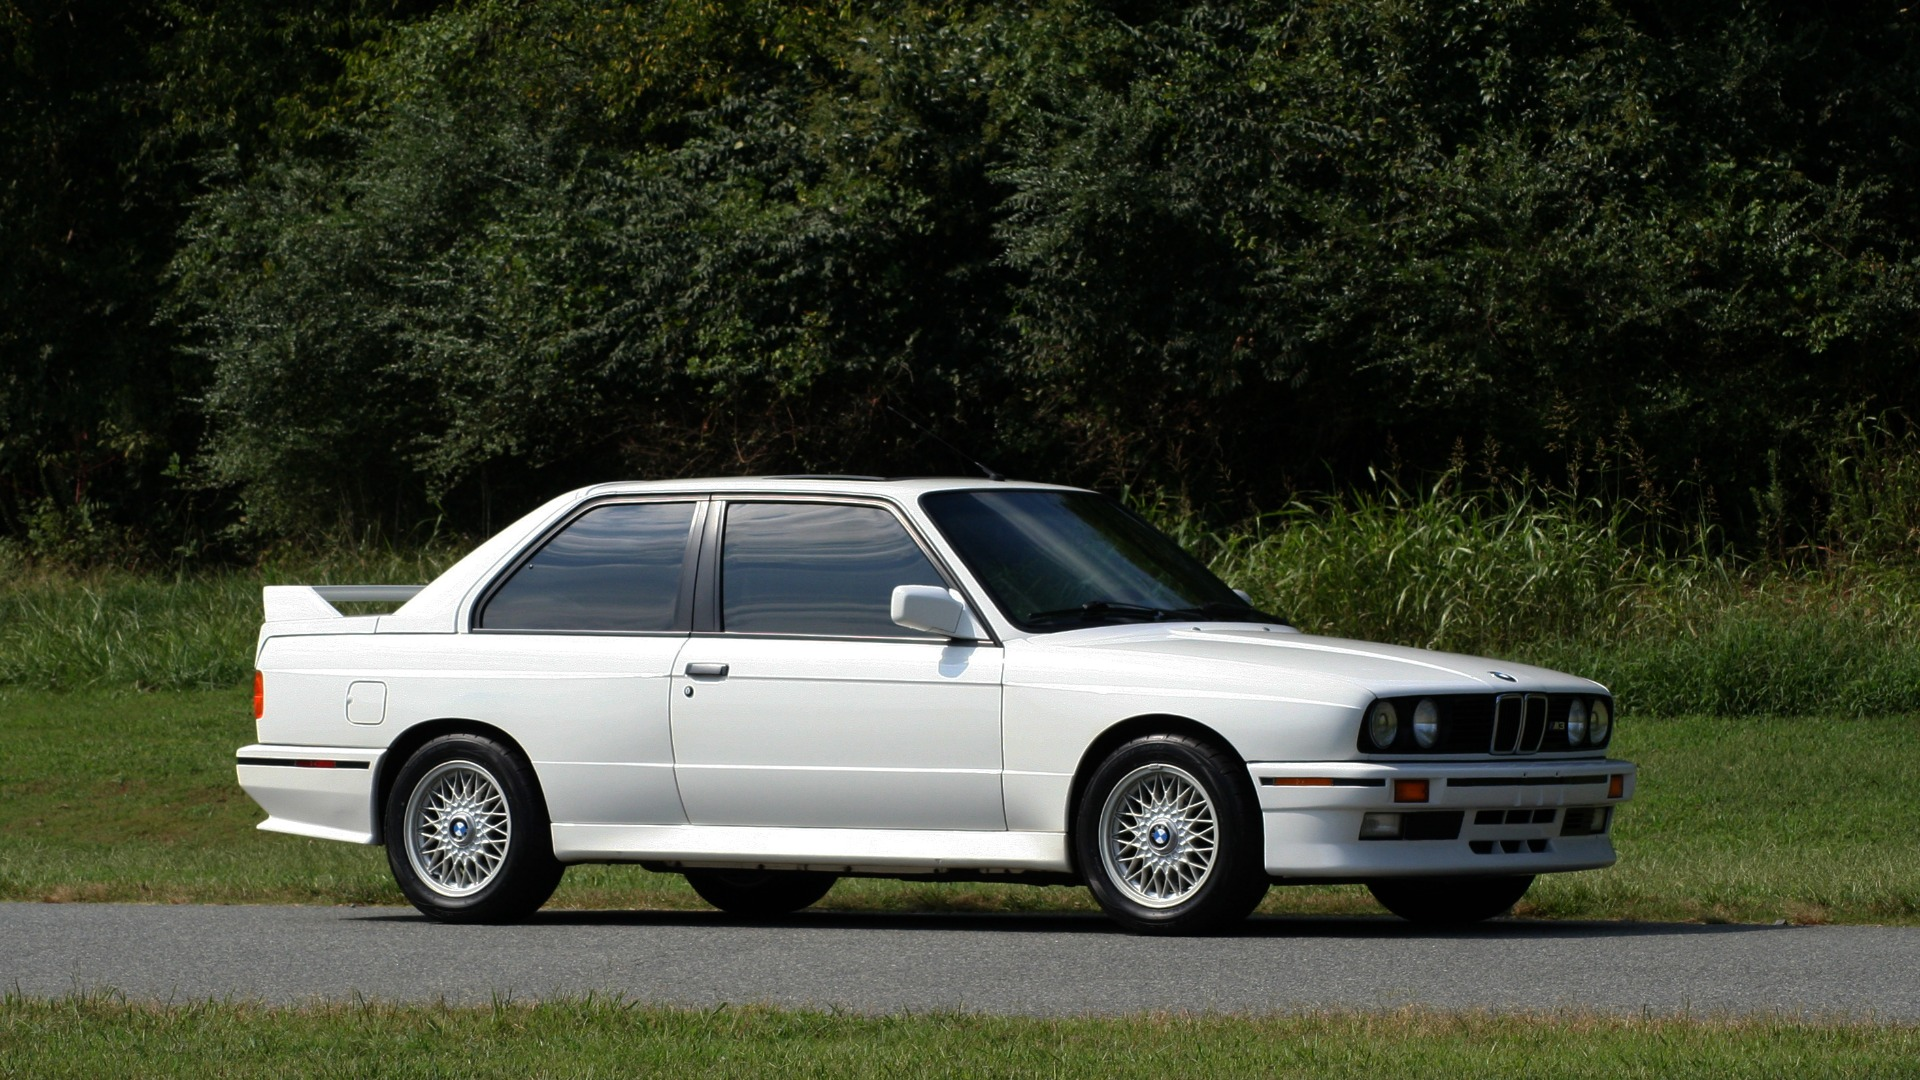 Used 1989 BMW M3 COUPE 2DR / 5-SPEED MAN / LOW MILES / SUPER CLEAN for sale Sold at Formula Imports in Charlotte NC 28227 11